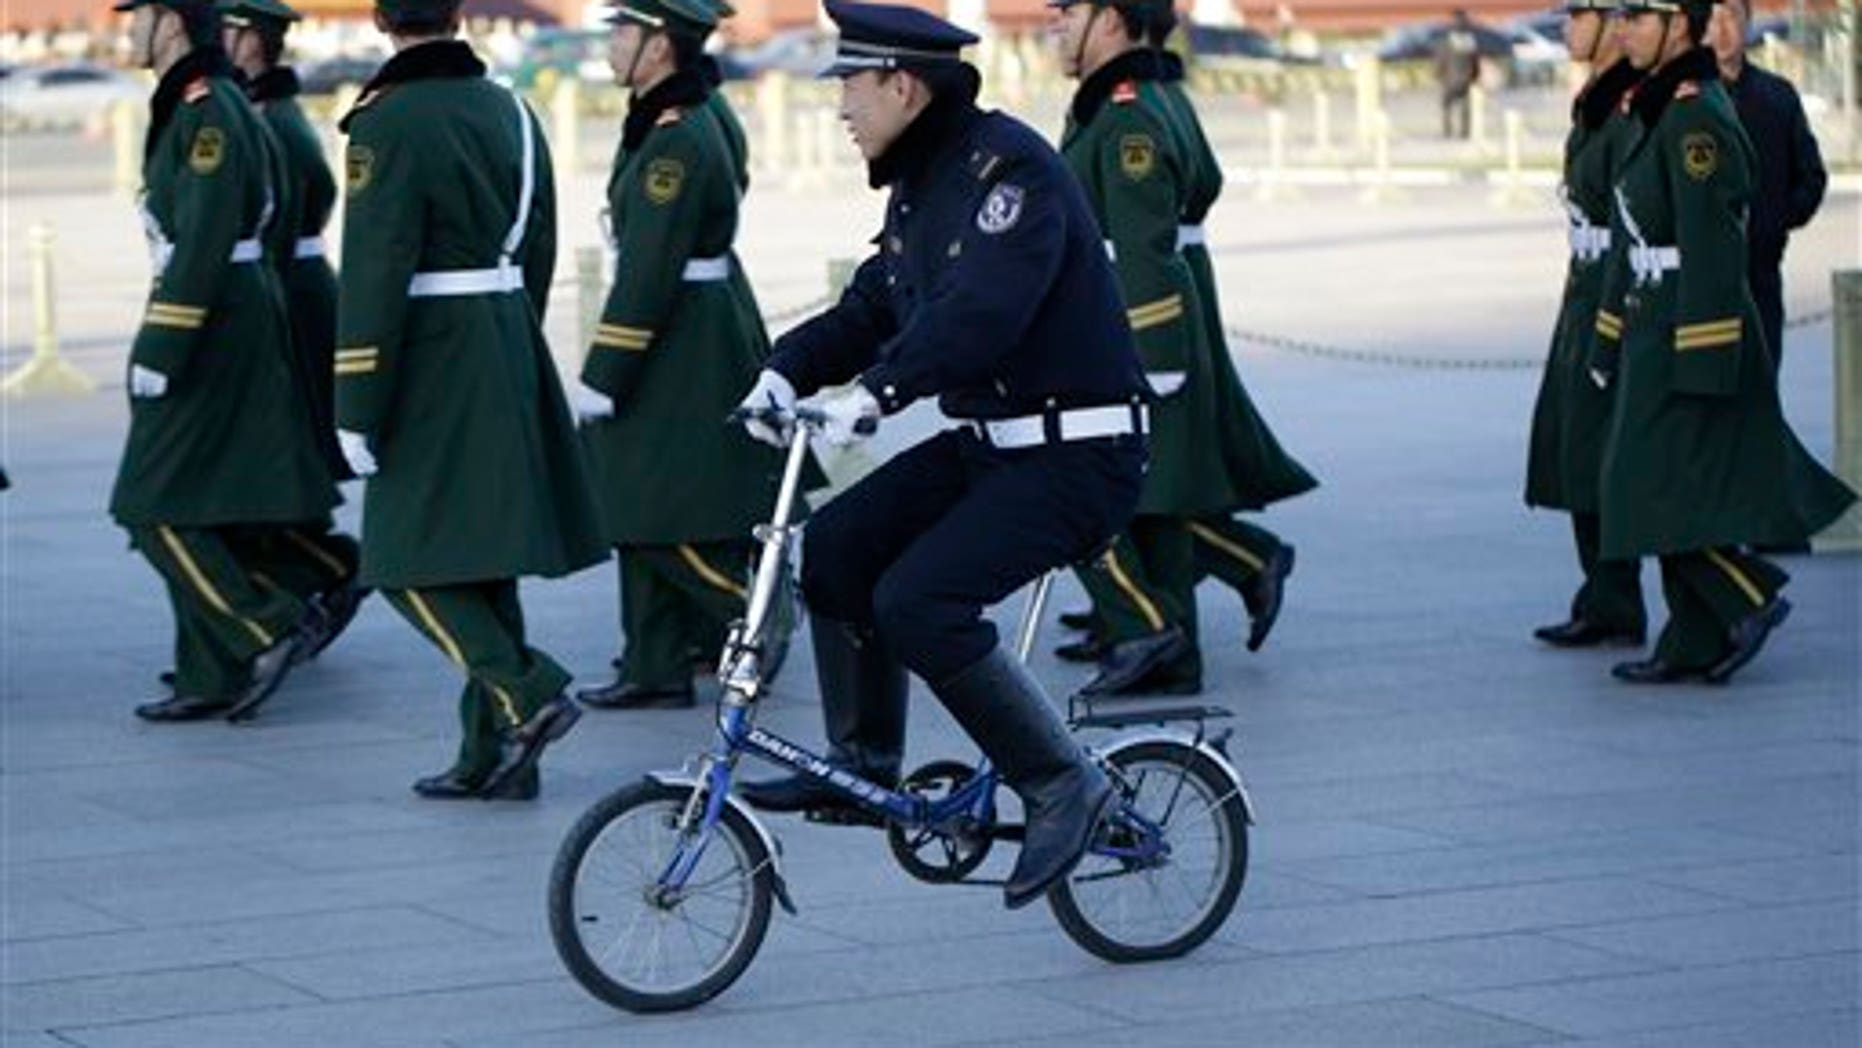 Nov. 13, 2012: Chinese paramilitary policemen march as police officer rides a bicycle during the 18th Chinese Communist Party Congress in Tiananmen Square.